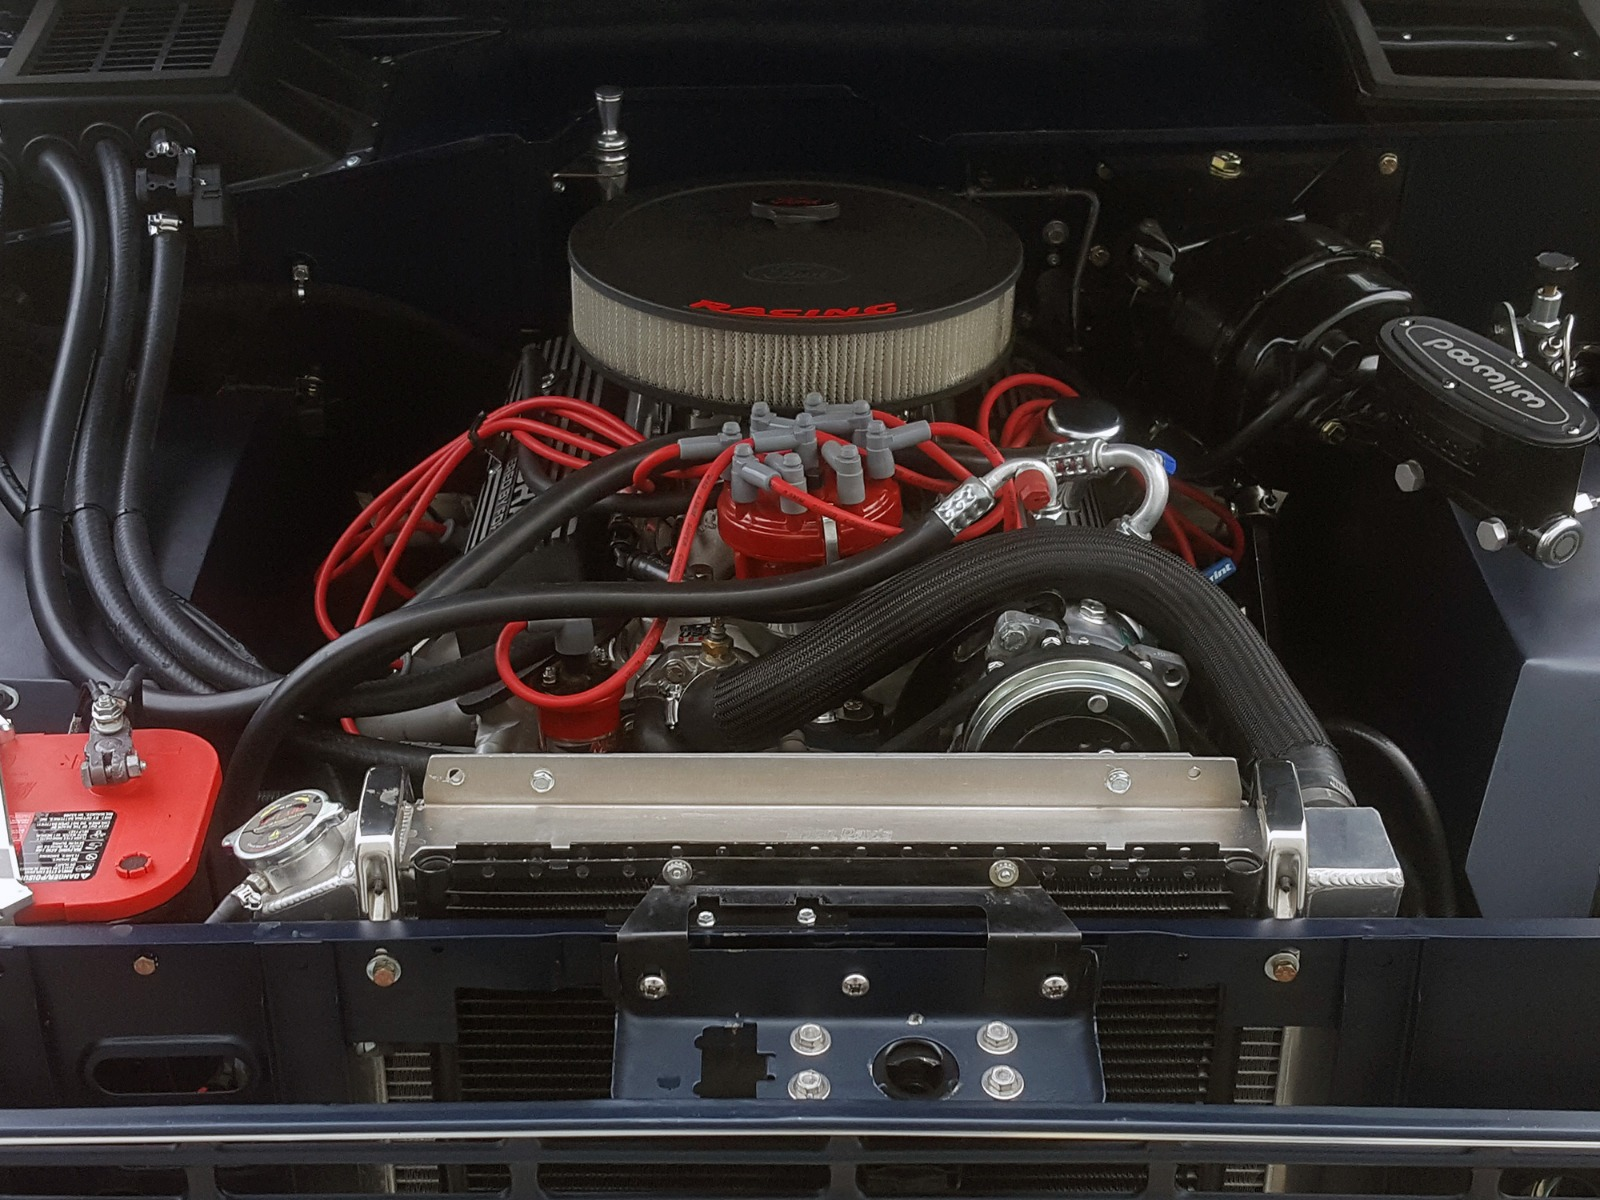 Edelbrock com: Edelbrock Electronic Fuel Injection